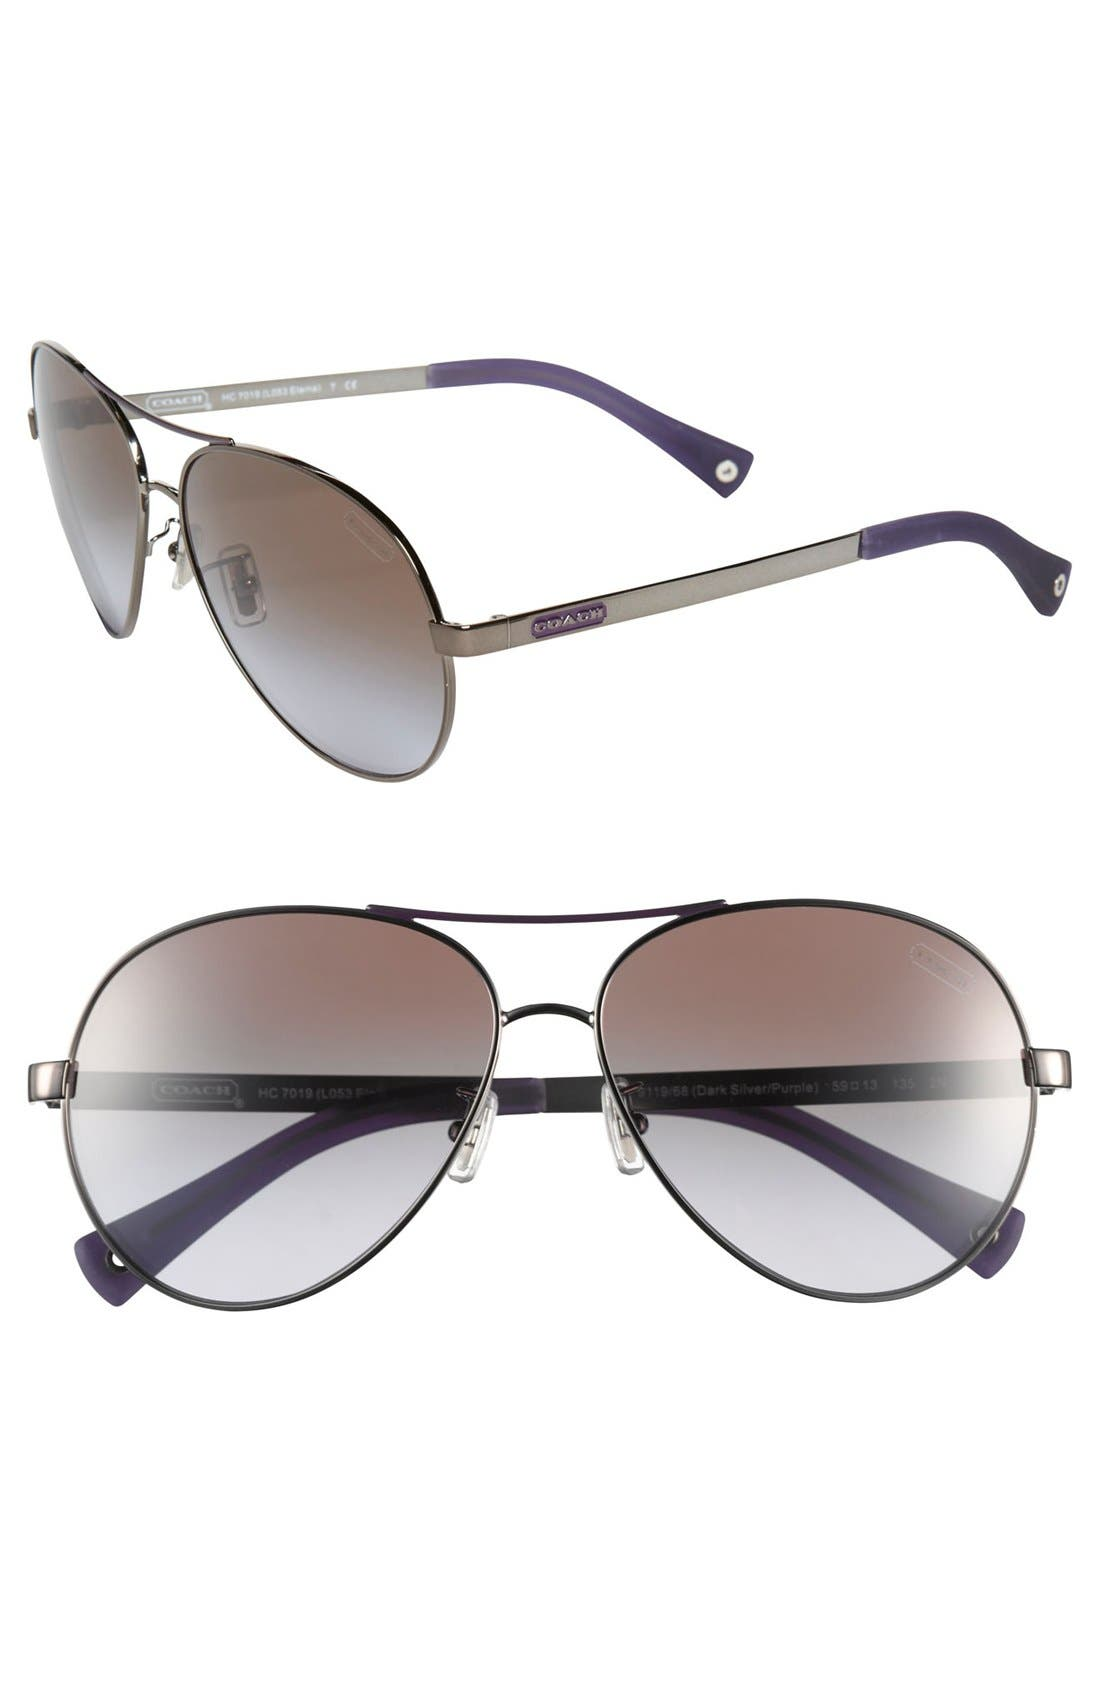 Alternate Image 1 Selected - COACH 'Elaina' 59mm Aviator Sunglasses